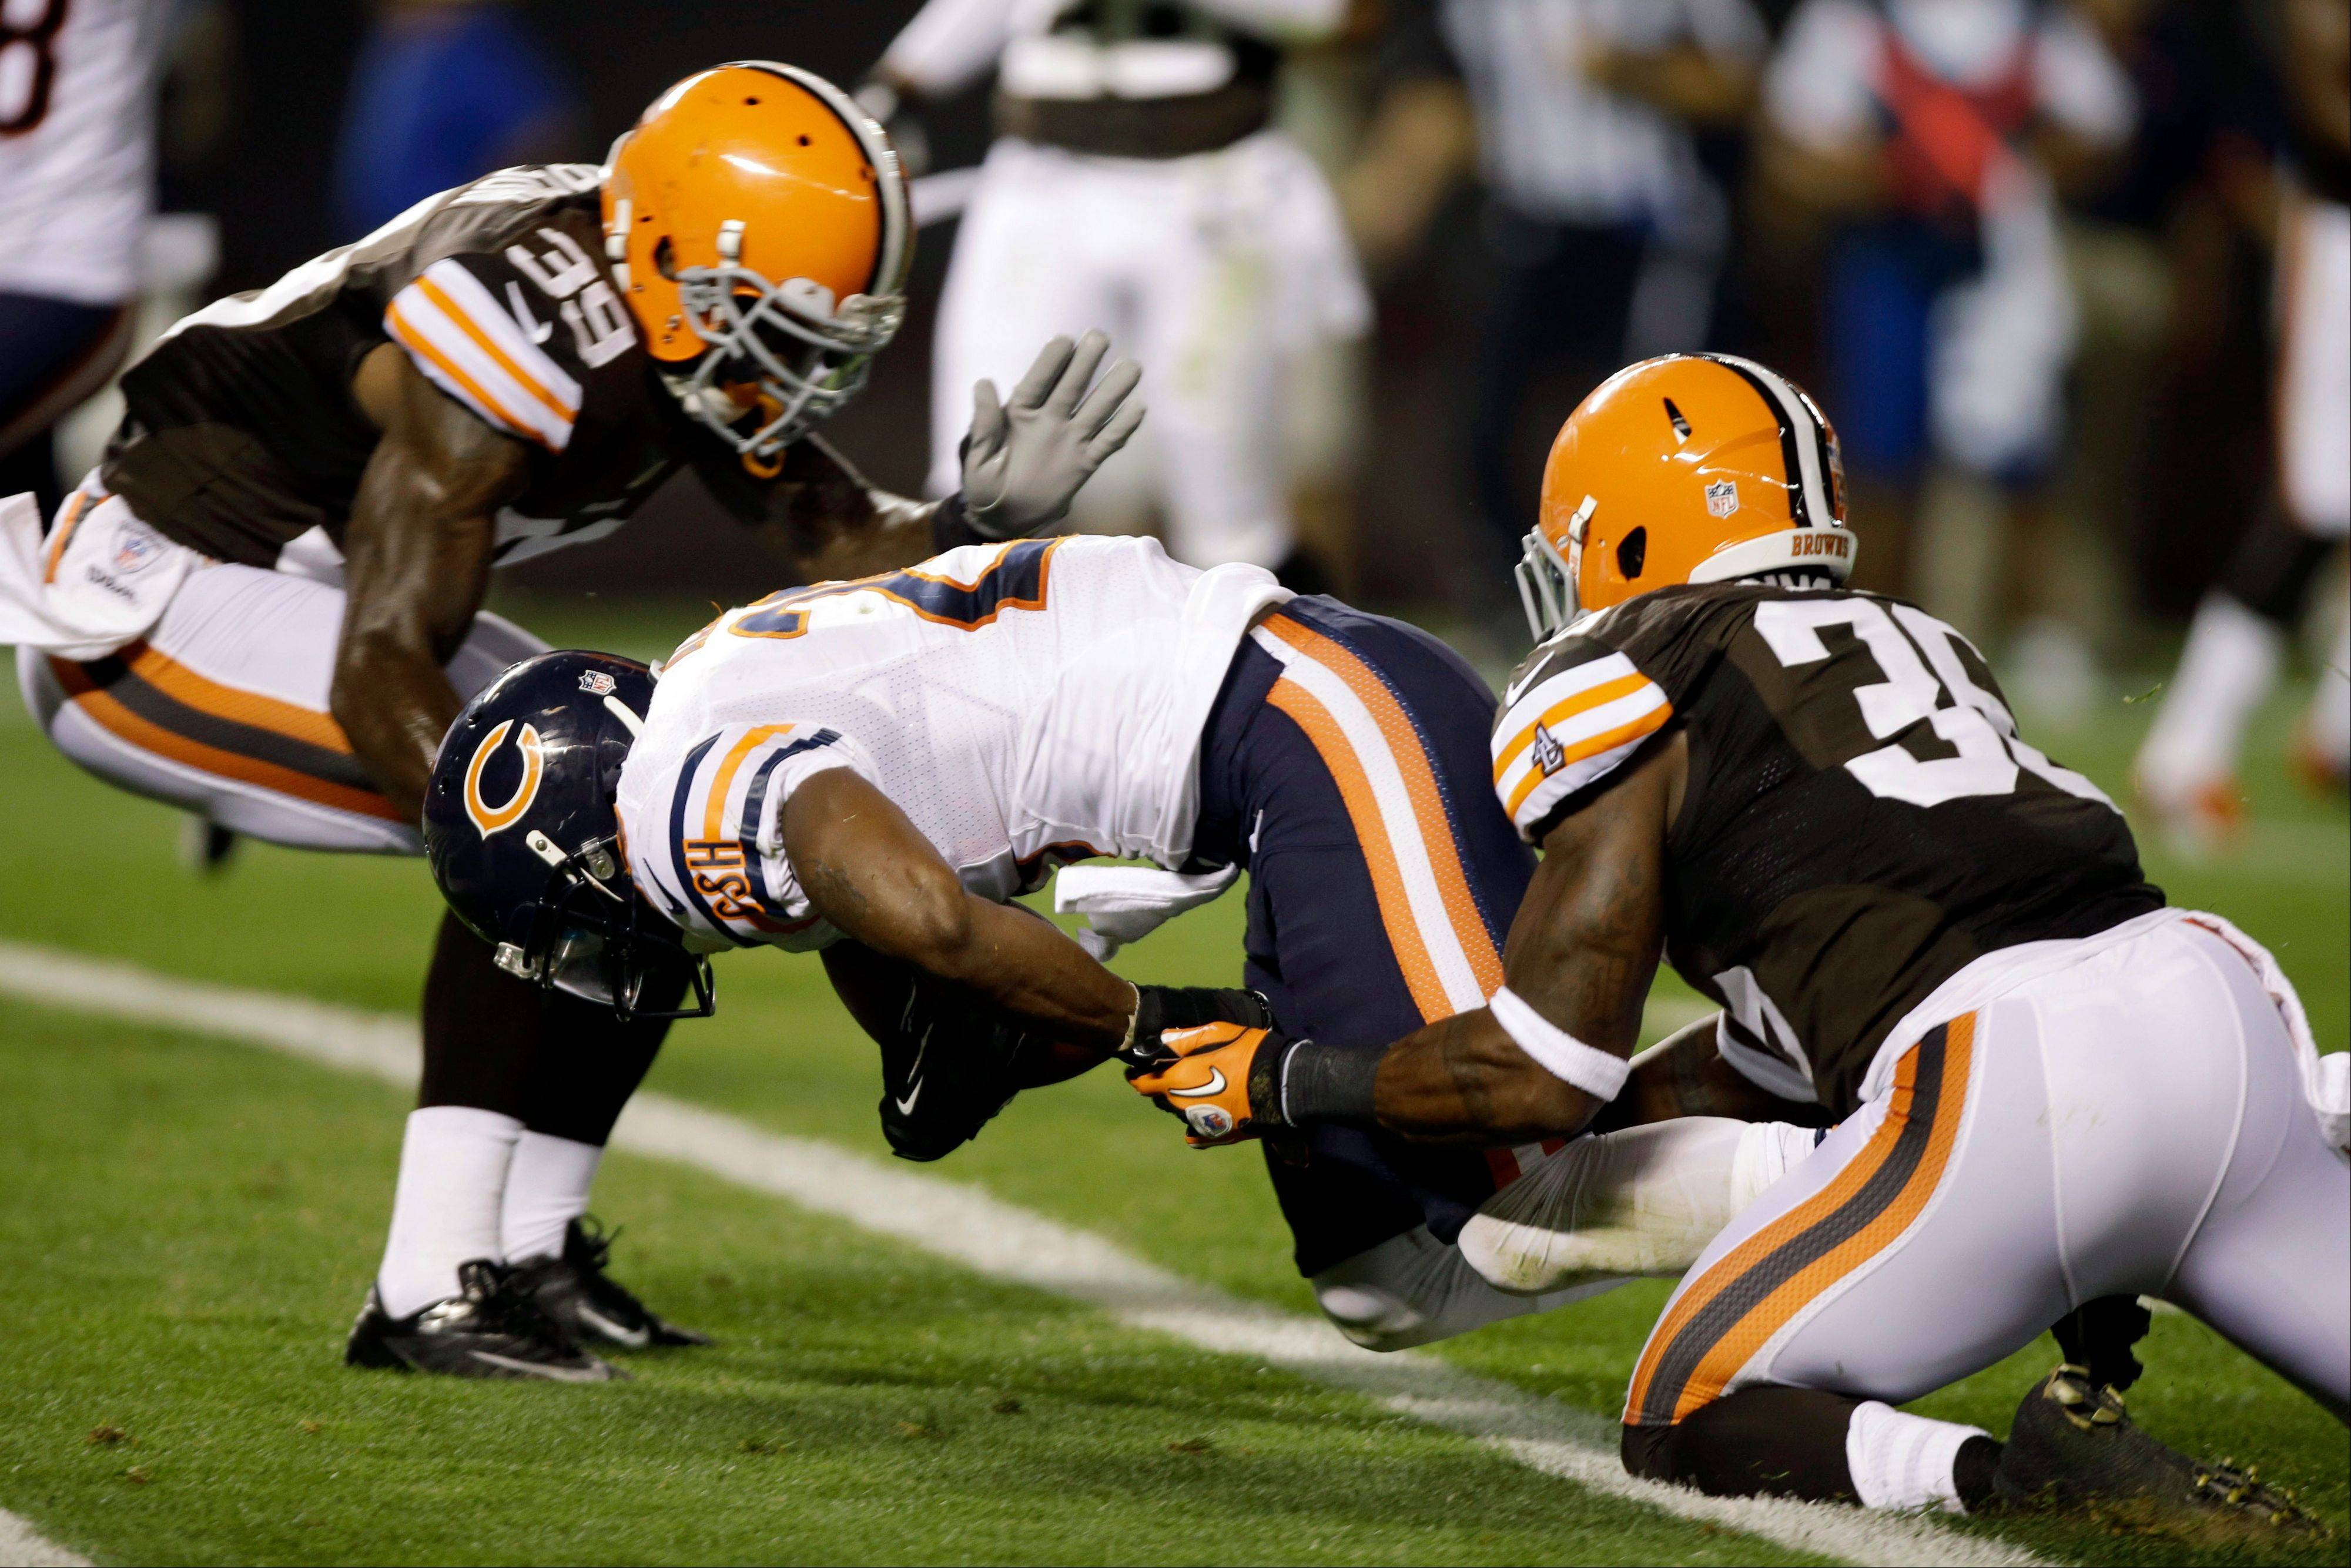 Chicago Bears running back Armando Allen enters the end zone for an 11-yard touchdown under pressure from Cleveland Browns' Tashaun Gipson (39) and David Sims during the second quarter of a preseason NFL football game Thursday, Aug. 30, 2012, in Cleveland.